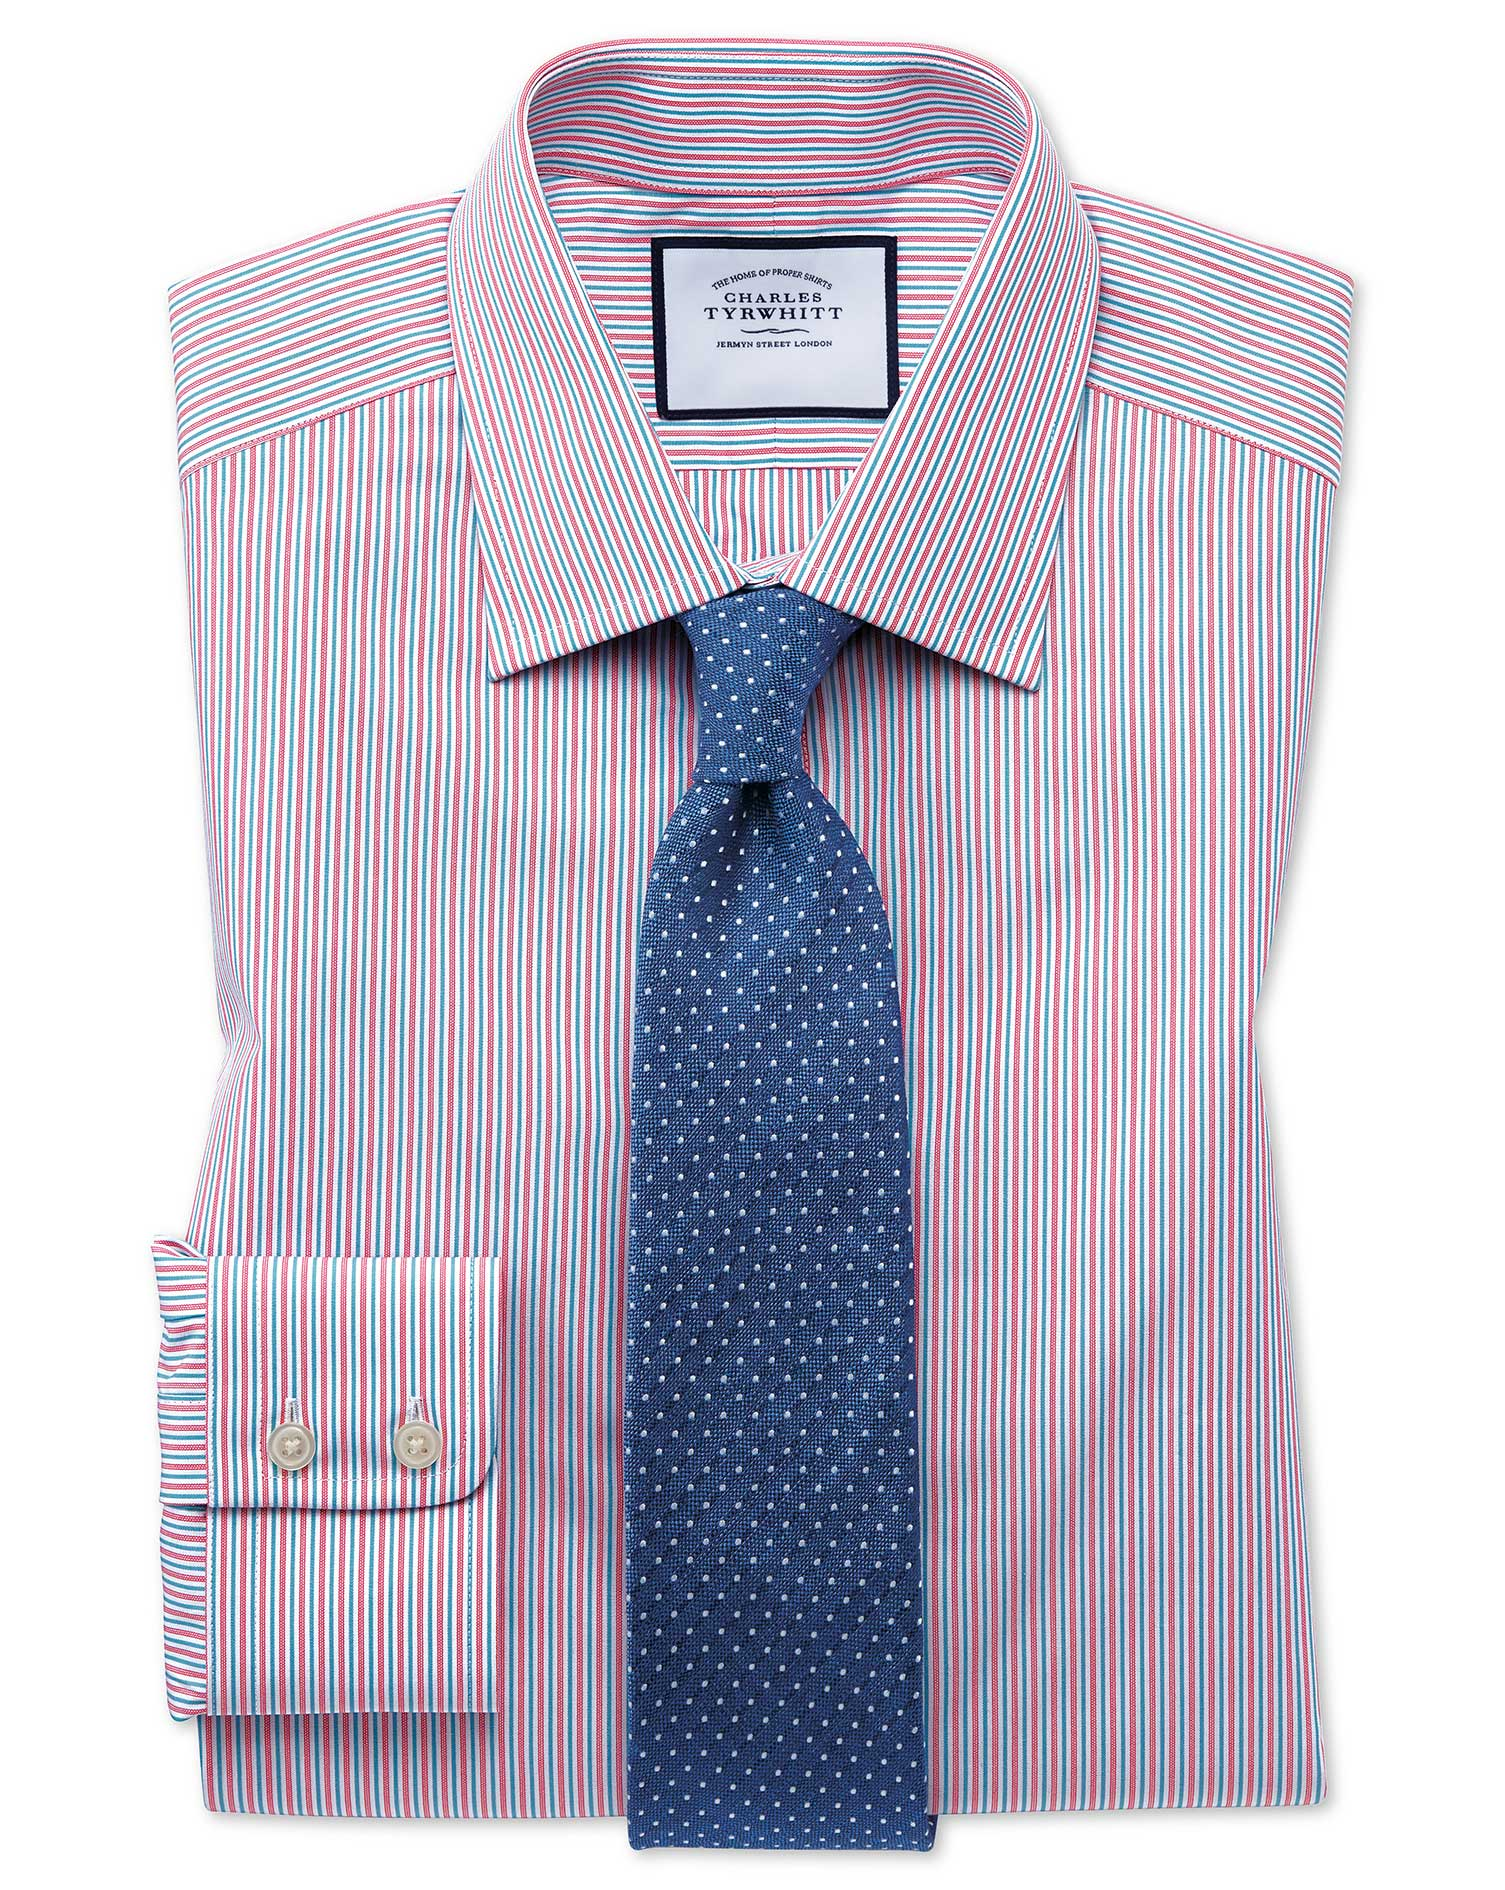 Slim Fit Egyptian Cotton Poplin Multi Pink Stripe Formal Shirt Single Cuff Size 16.5/34 by Charles T